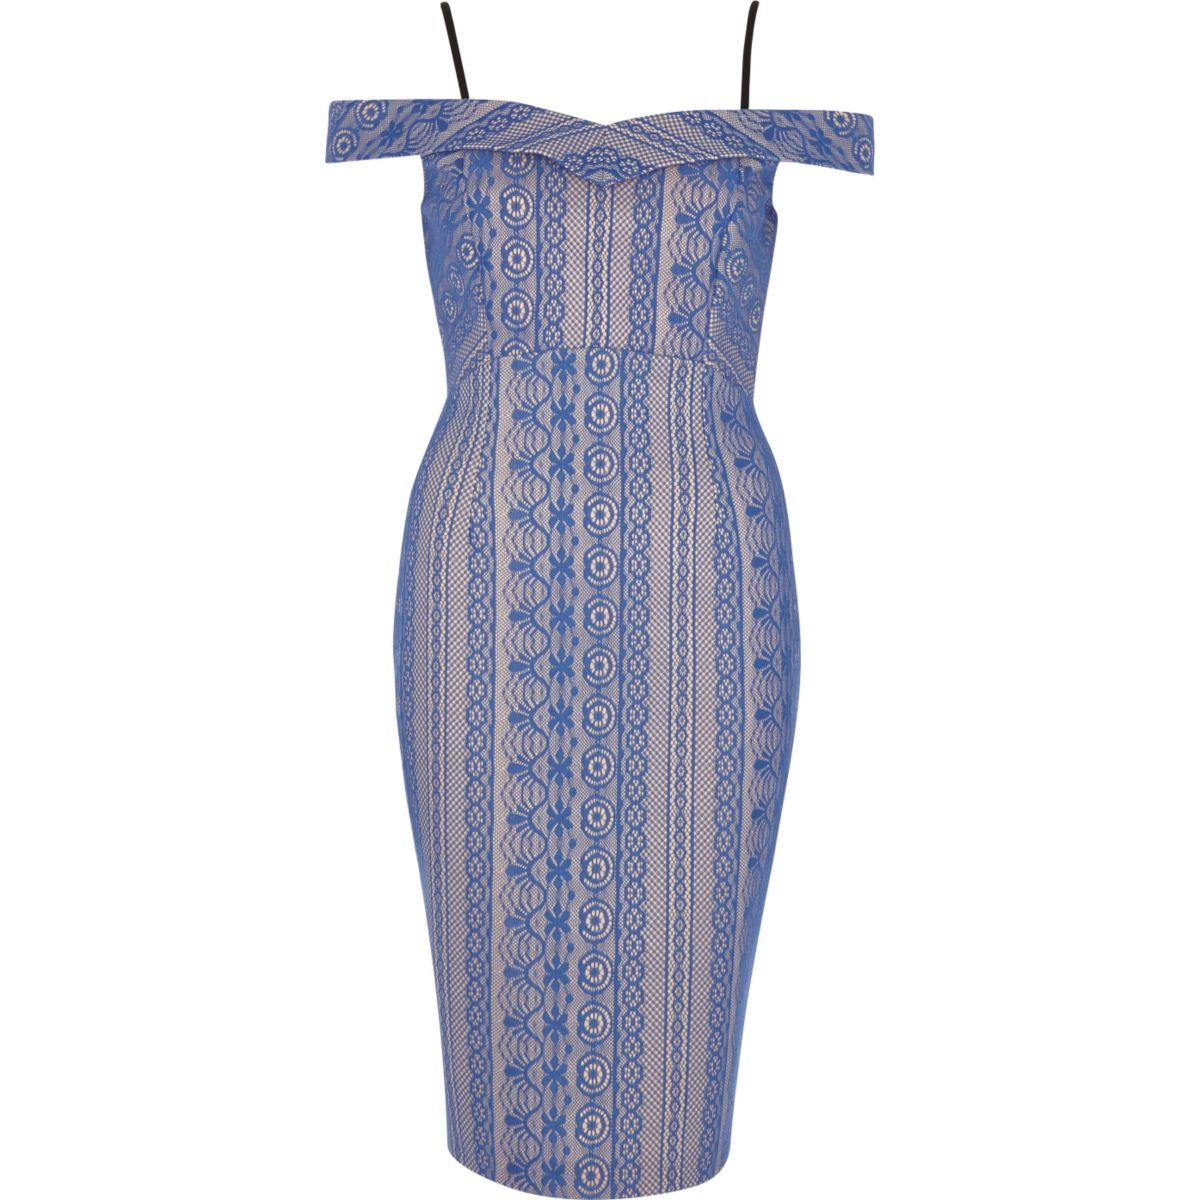 Blue lace short sleeve bodycon dress